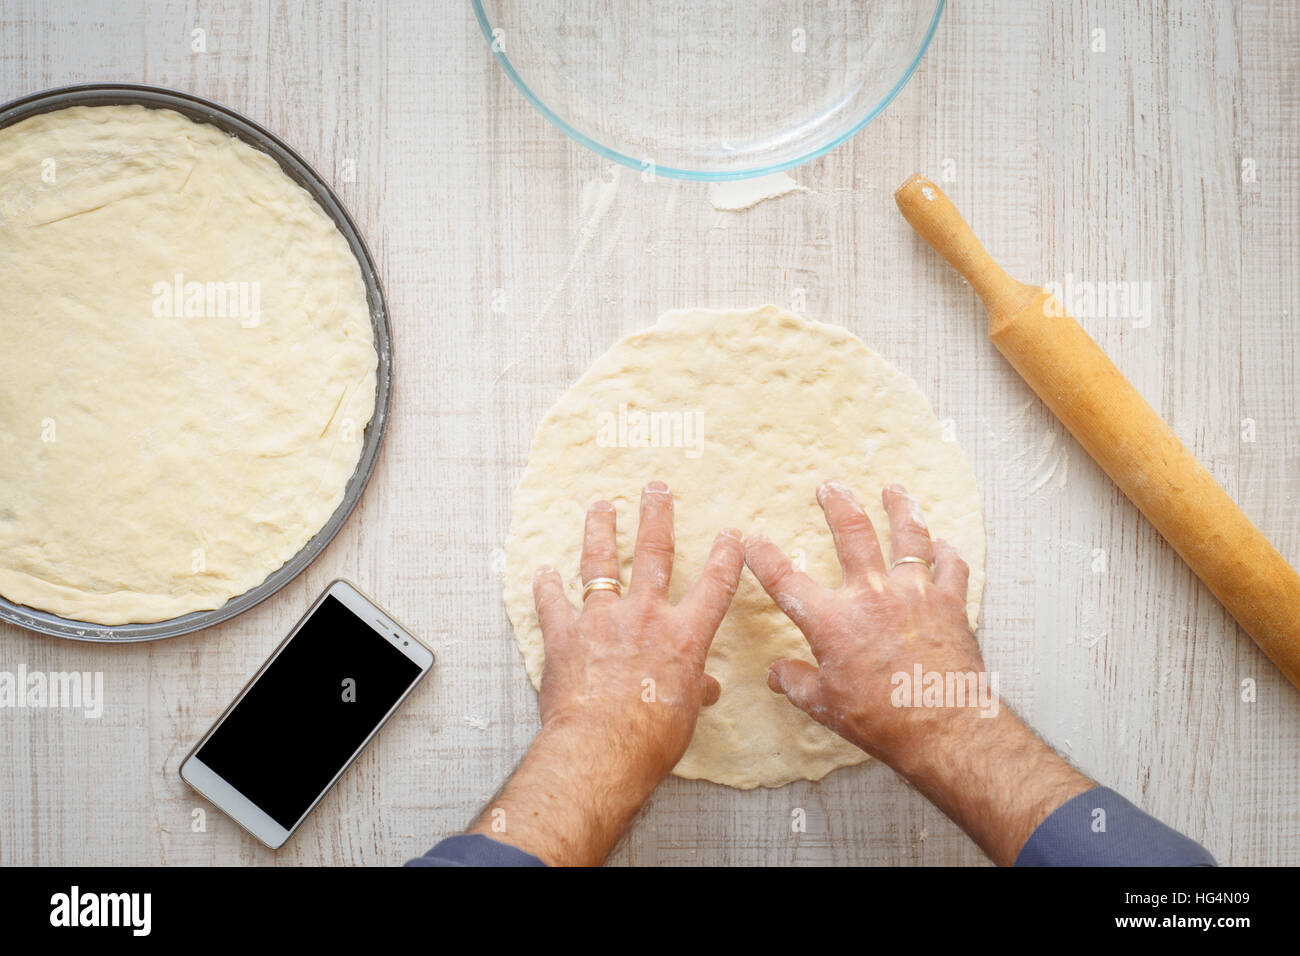 Man cooking dough for two pizzas on the wooden table horizontal - Stock Image